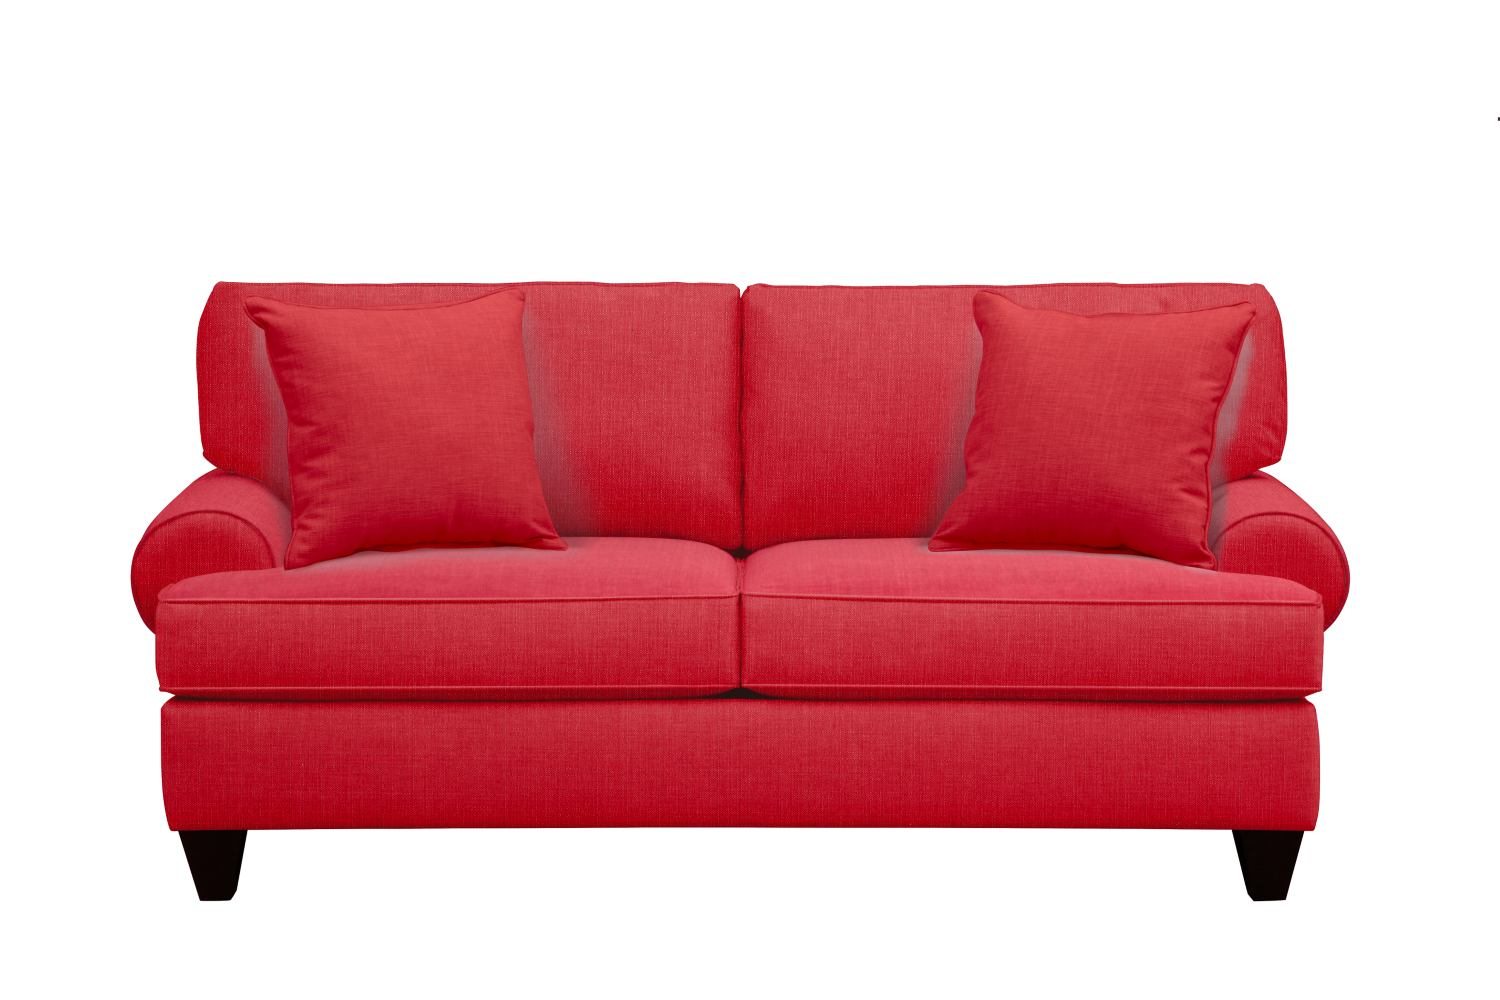 "Living Room Furniture - Bailey Roll Arm Sofa 79"" Depalma Cherry w/ Depalma Cherry Pillow"